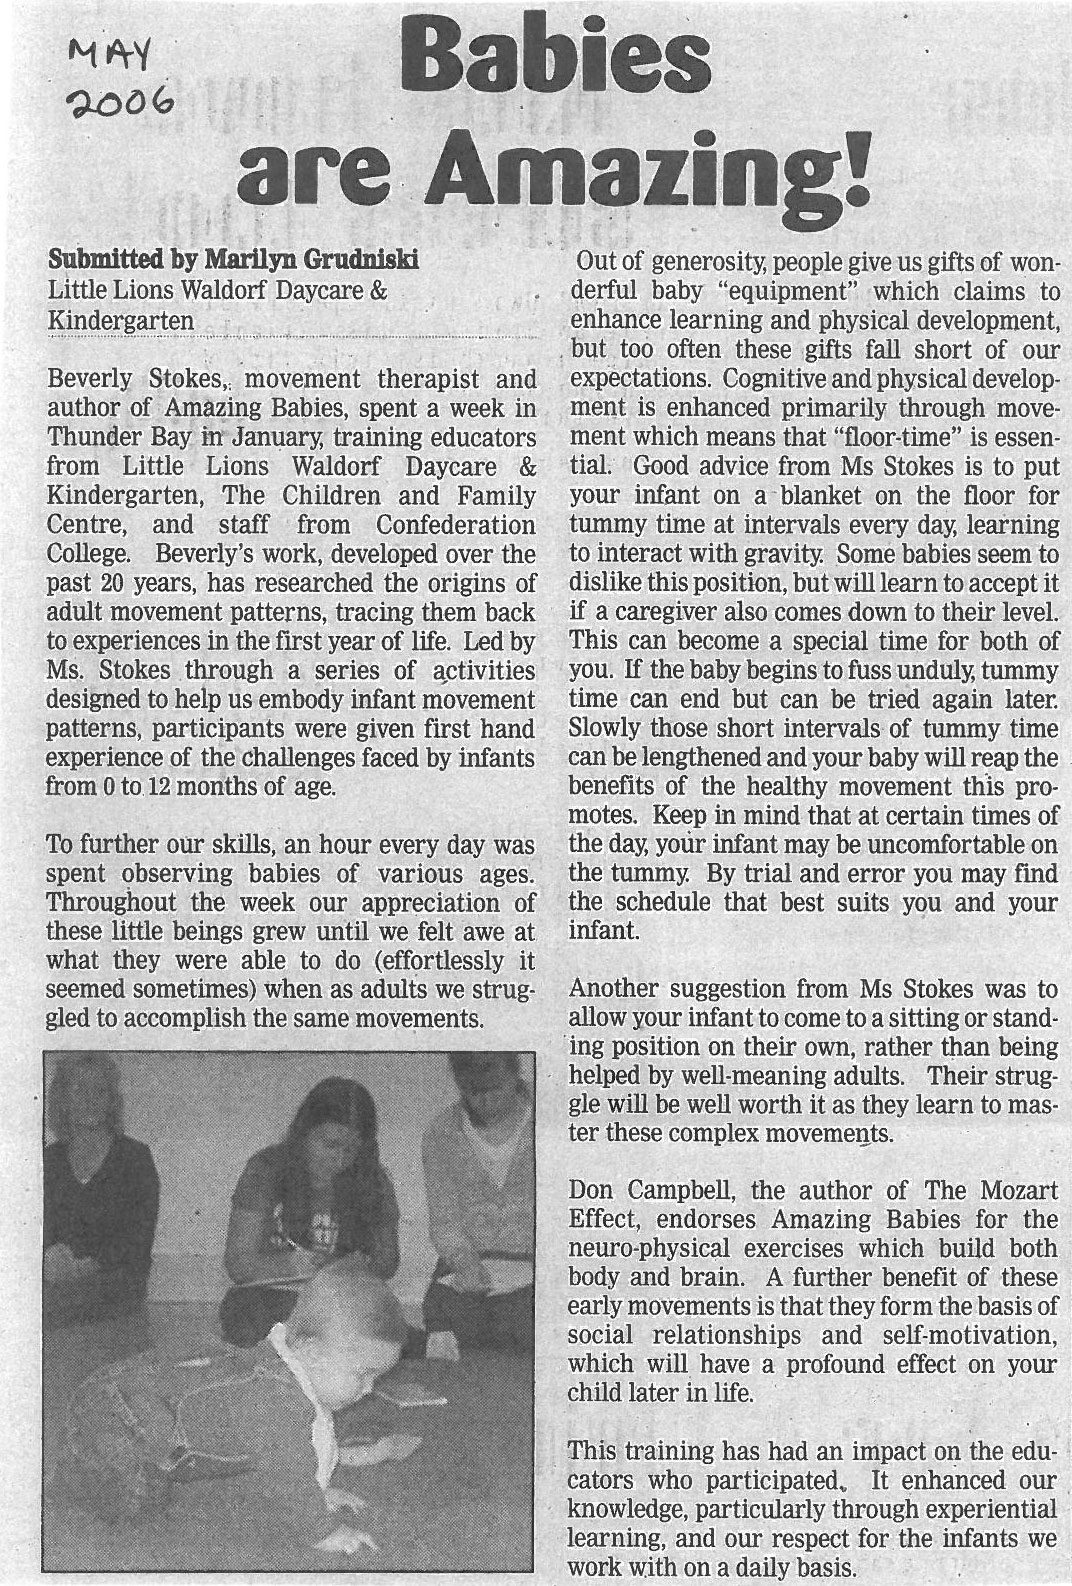 Article, May 2006 Chronicle Journal